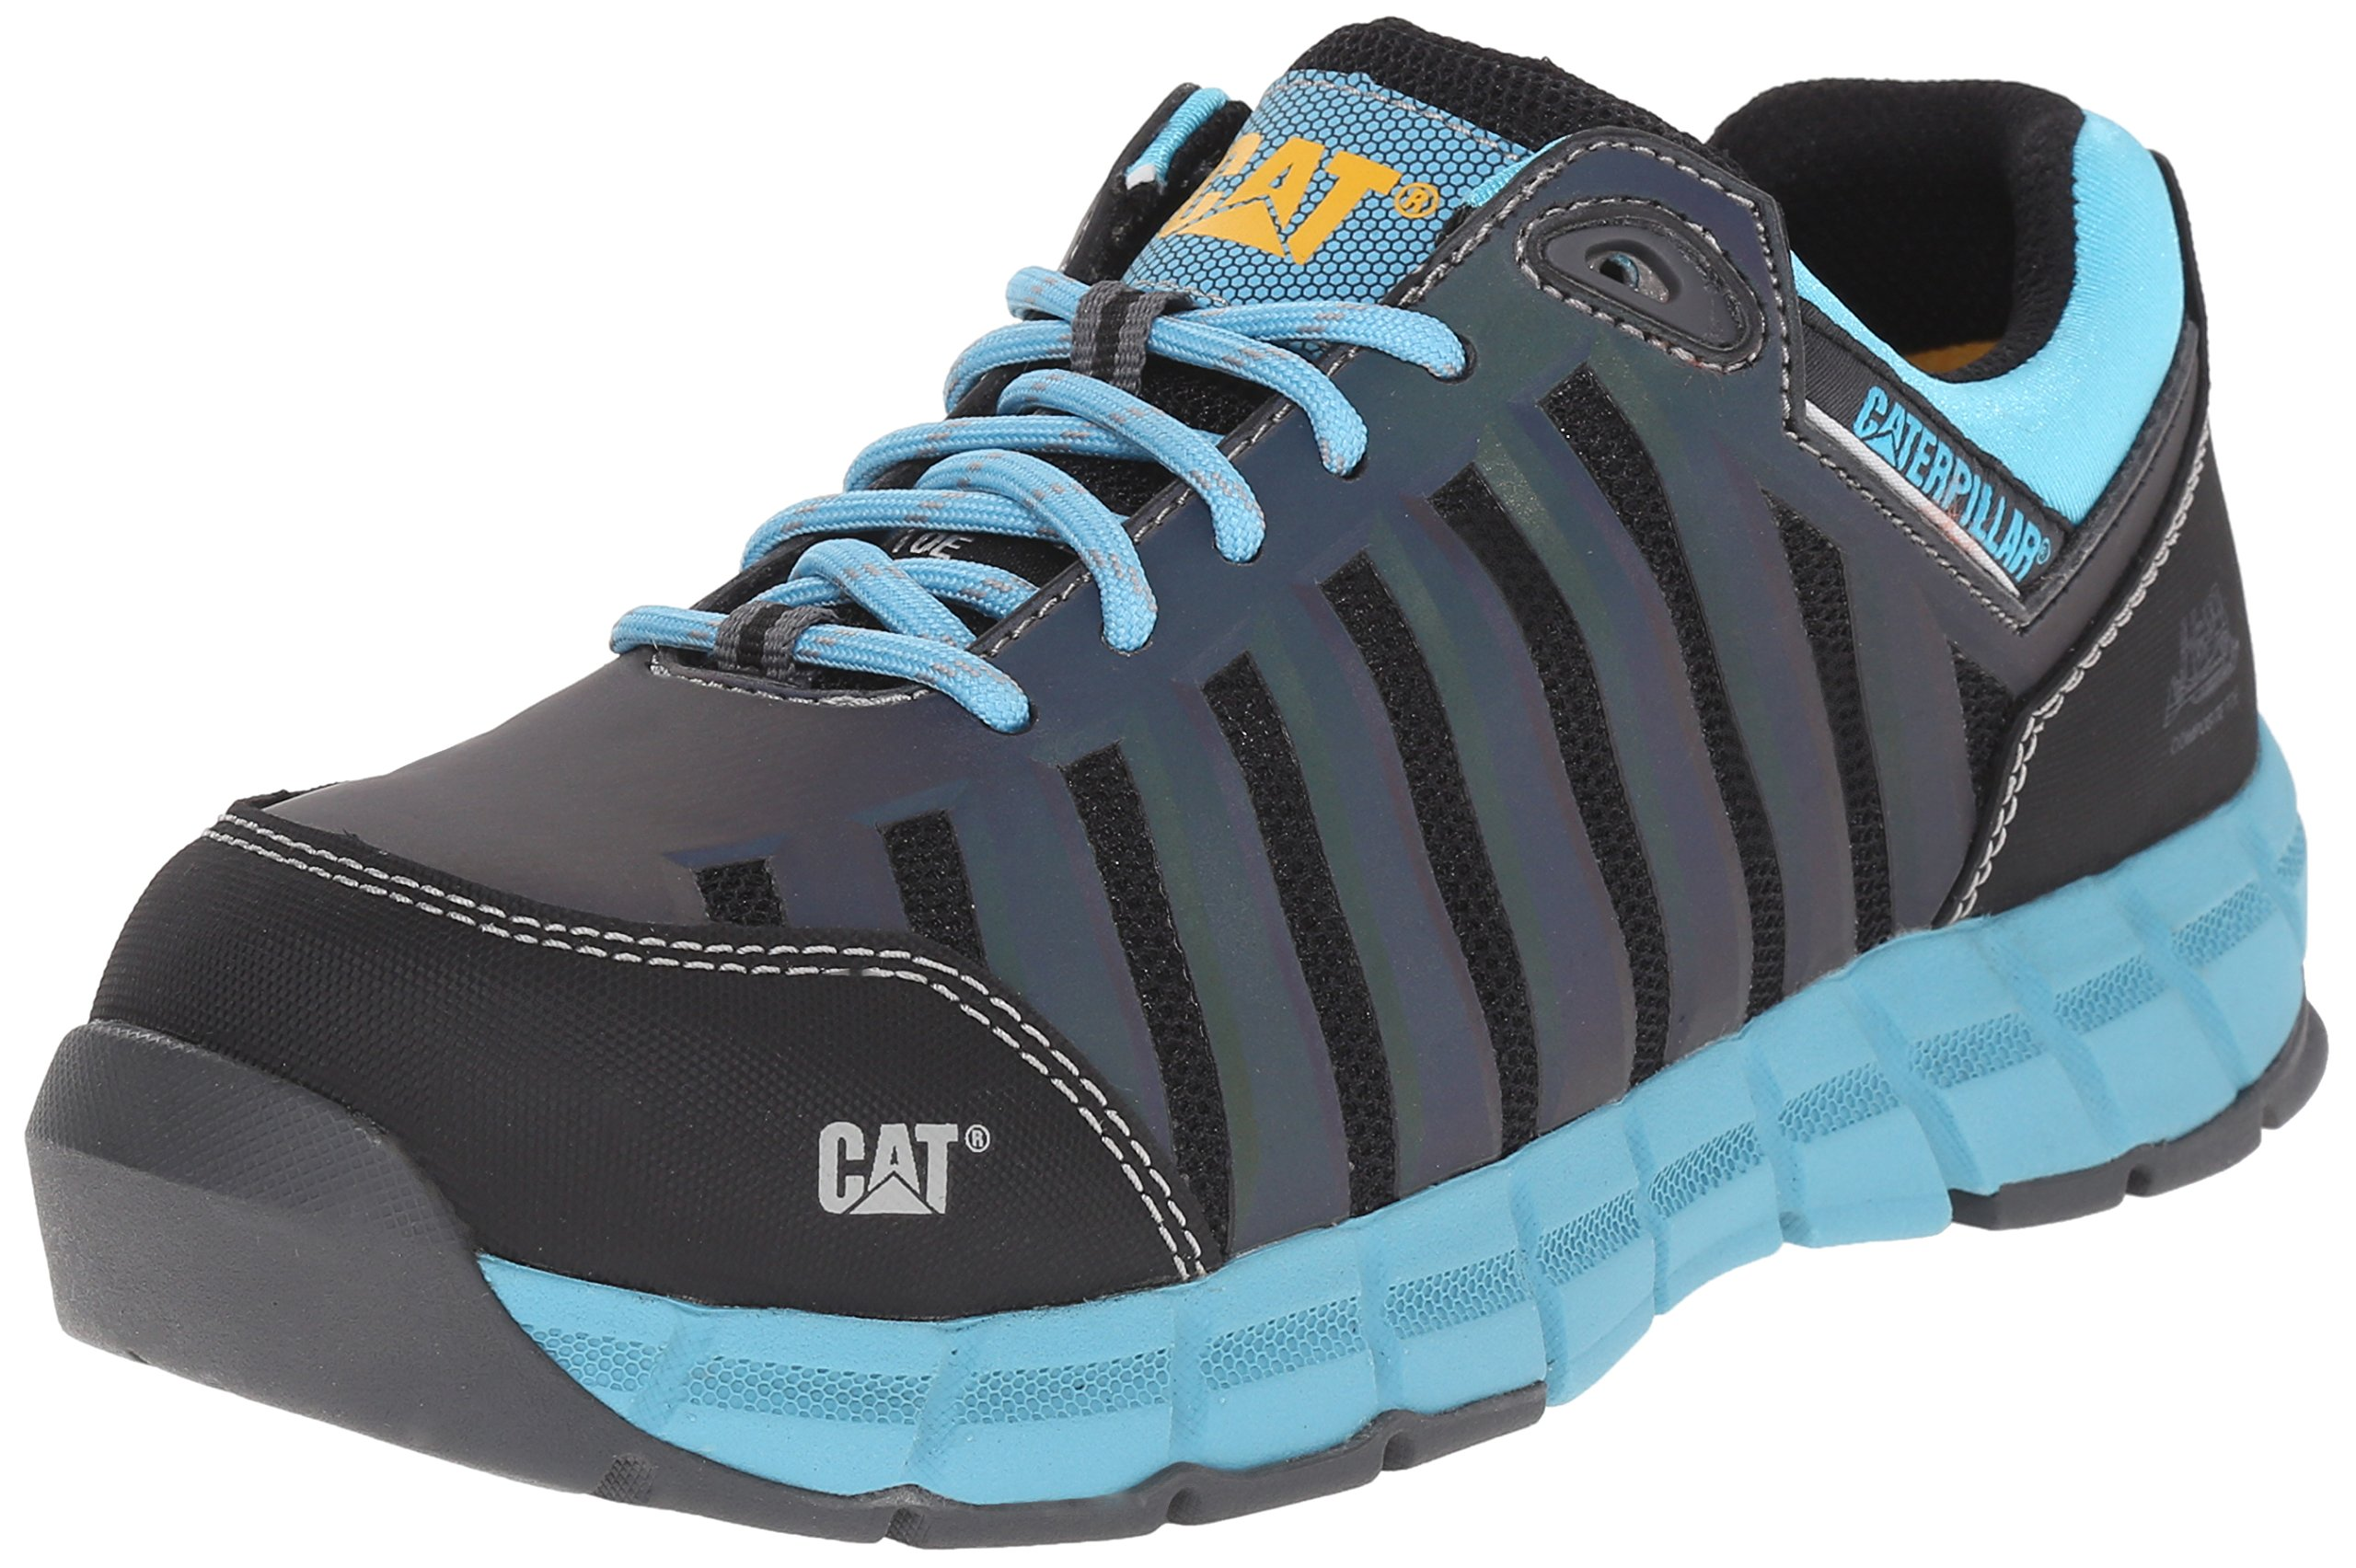 Caterpillar Women's Chromatic Oxford Athletic Comp Toe, Maui Blue, 8 W US